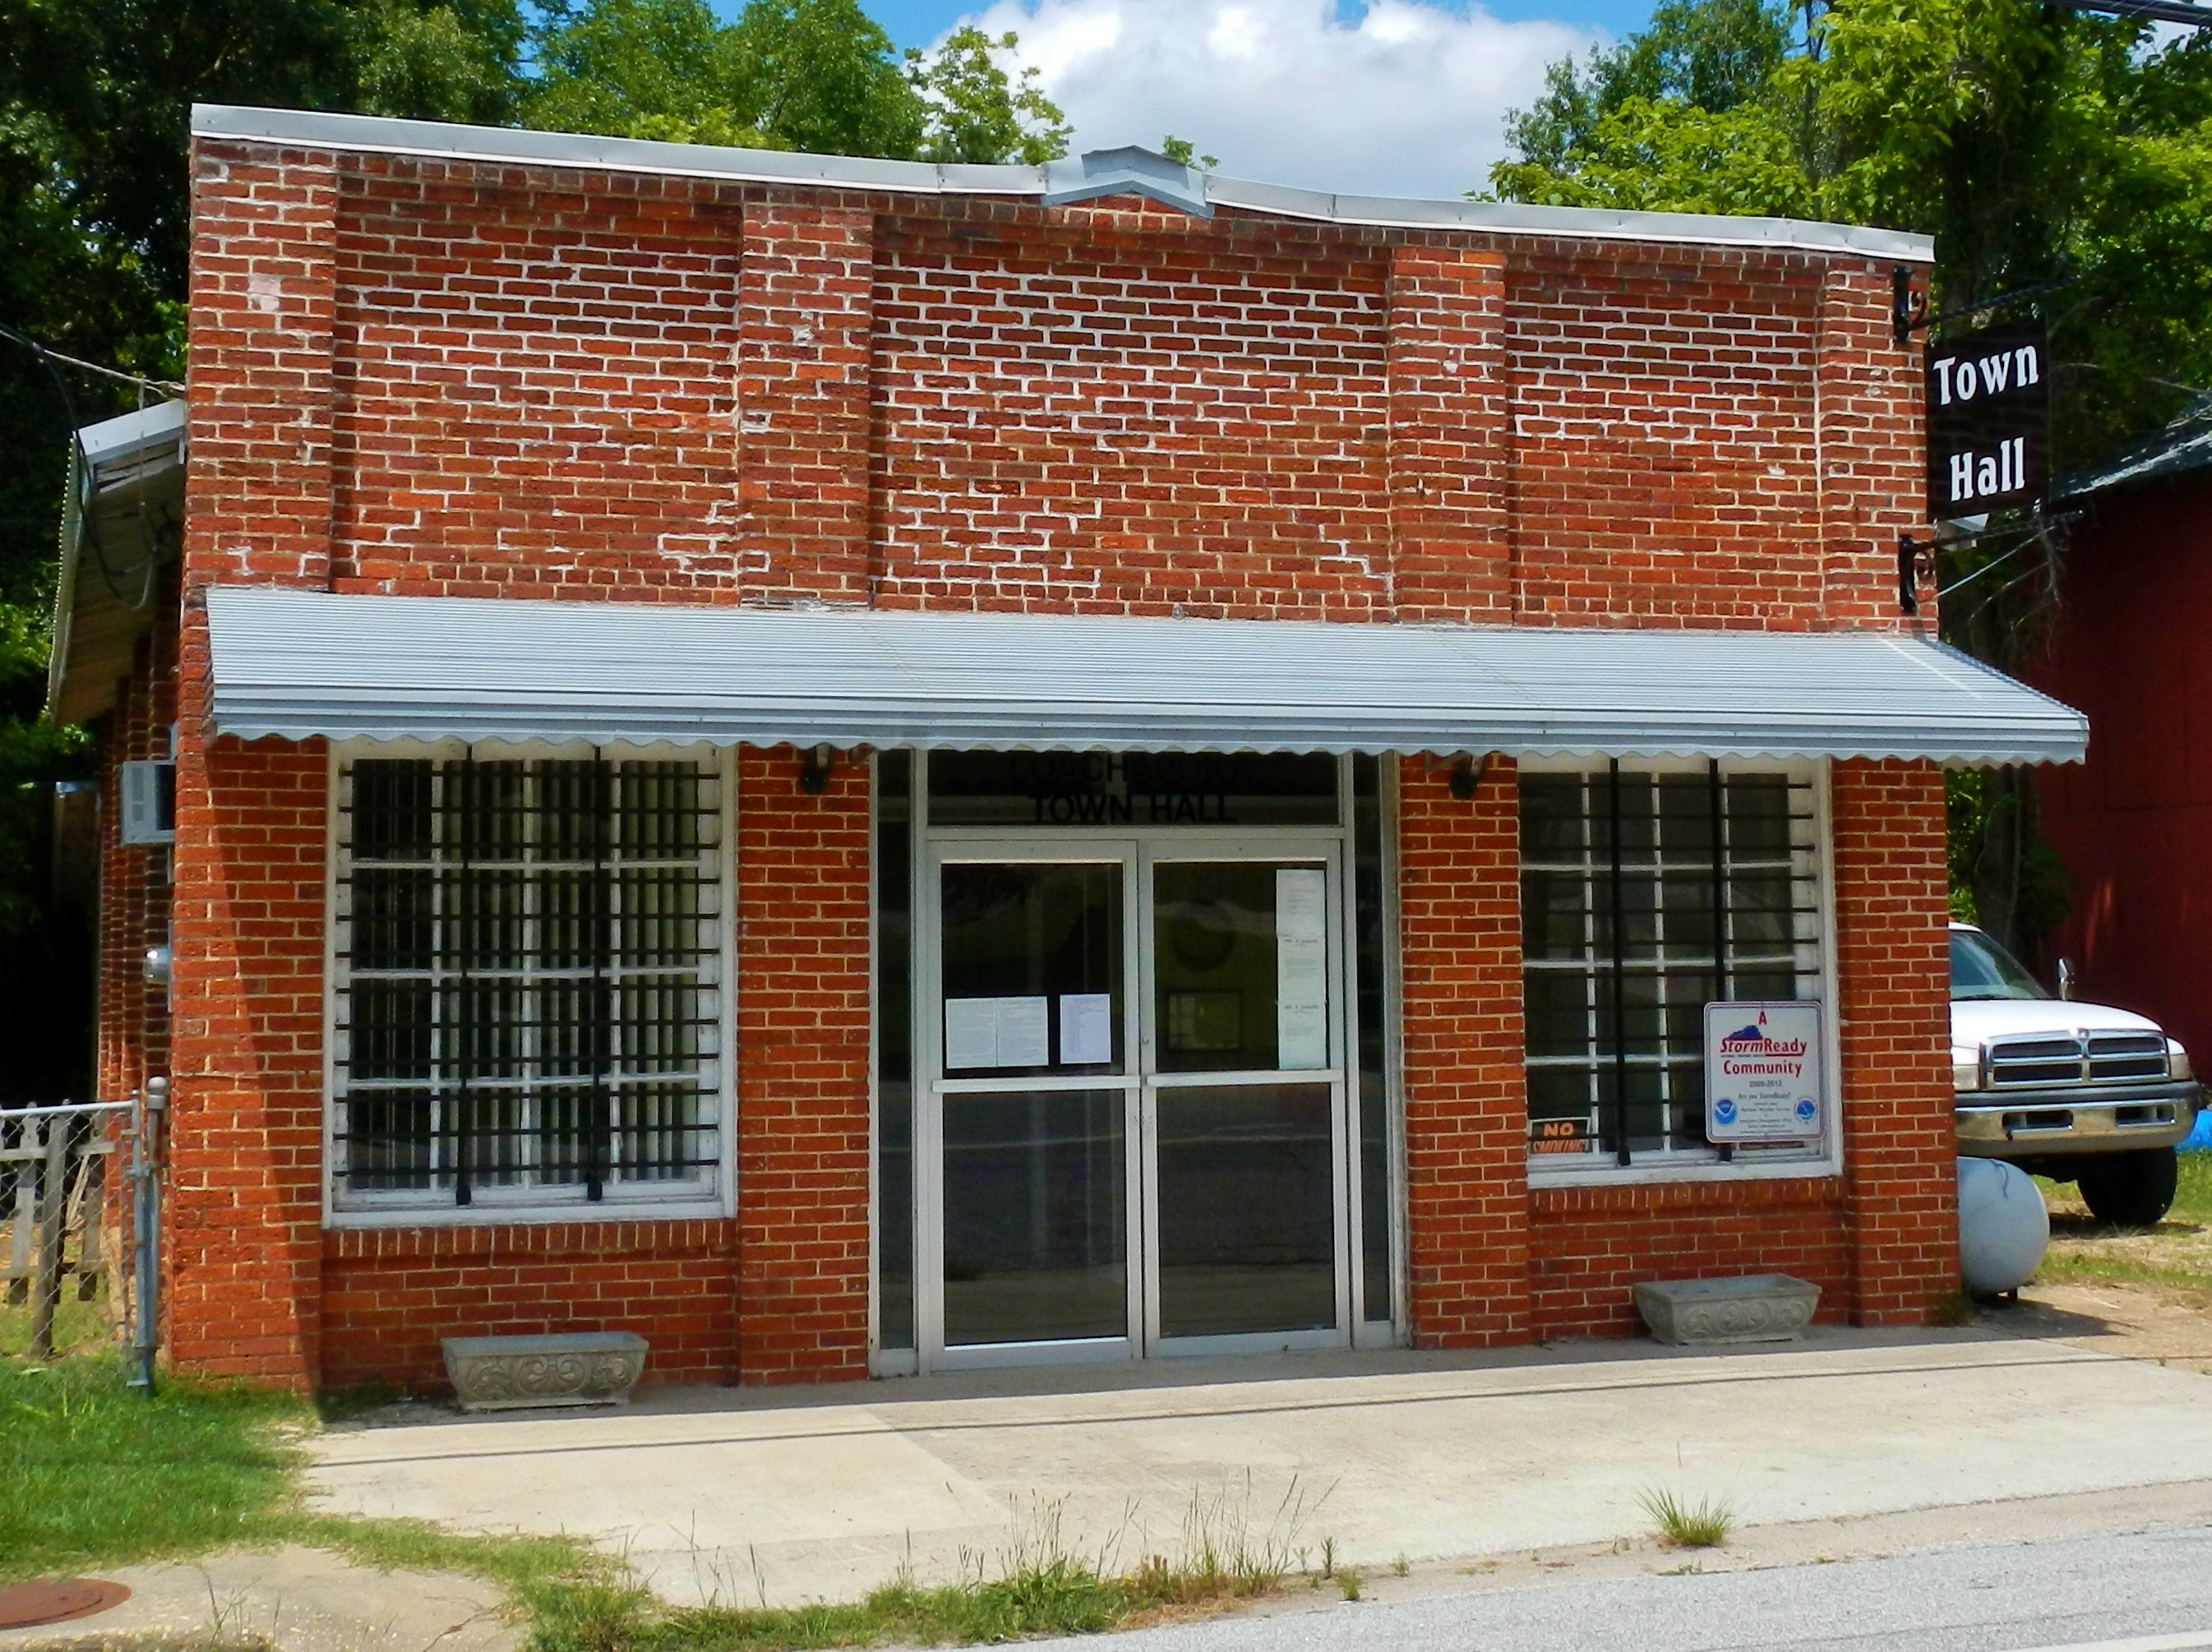 loachapoka dating County senior services, senior health services and senior services in loachapoka, al get directions, photos and reviews.